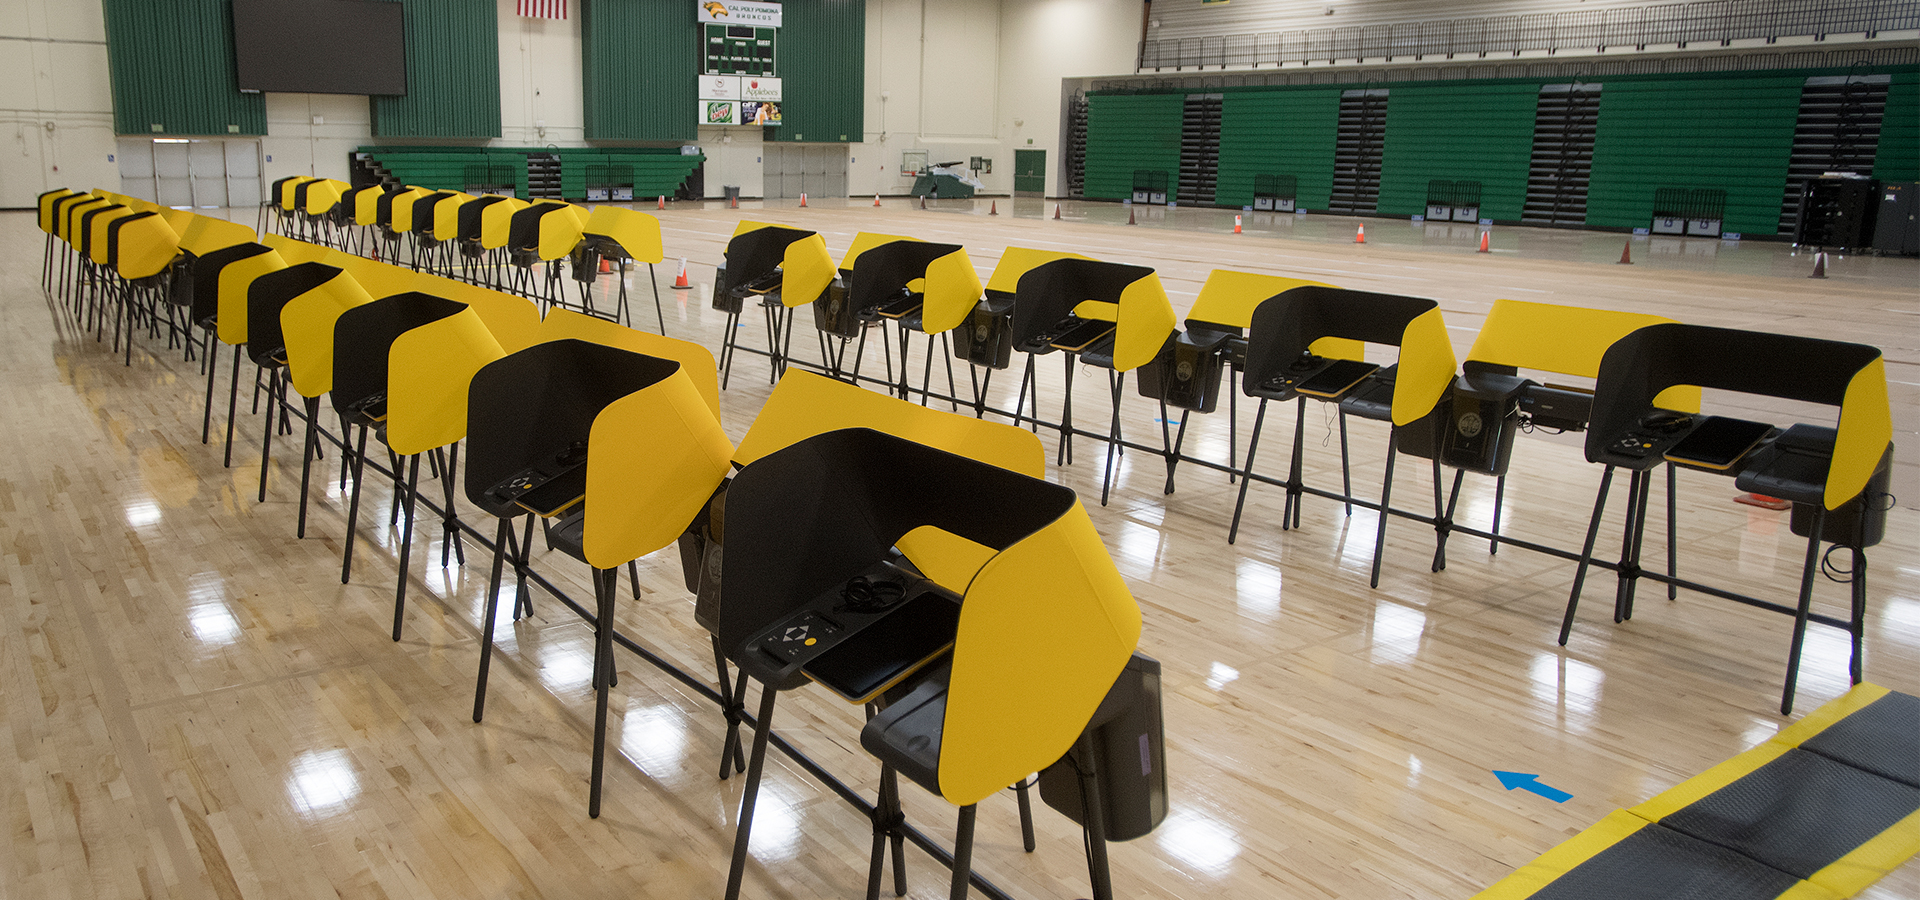 Kellogg Arena transformed with voting machines